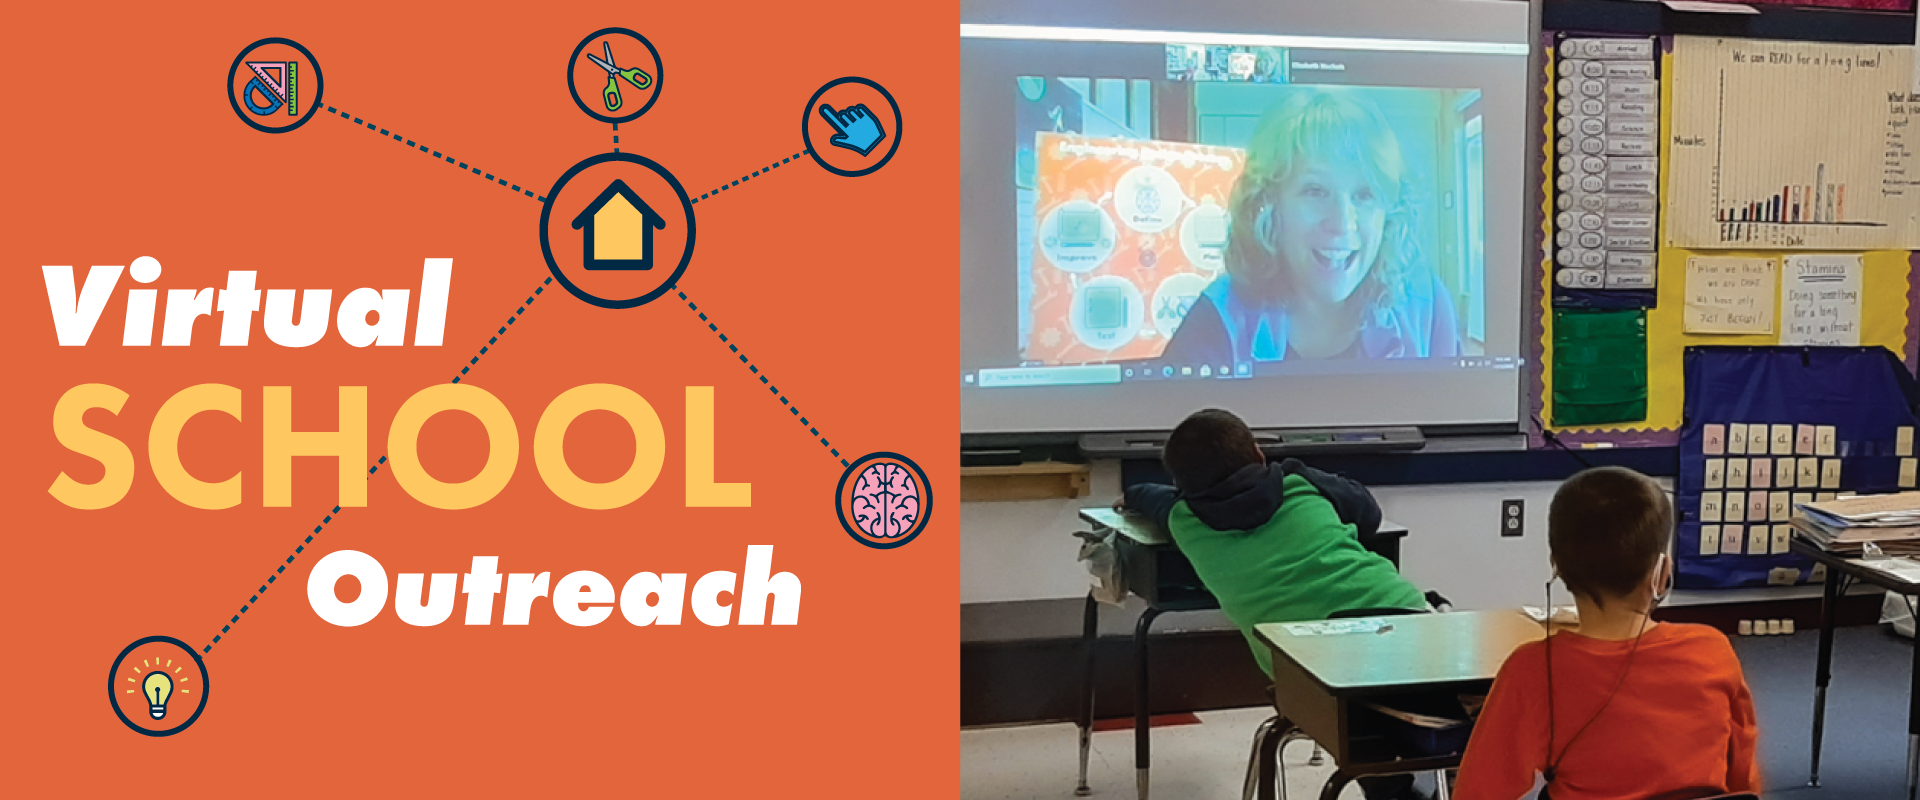 Virtual School Outreach with a photo of ECHO educator on a large screen inside a classroom. ECHO Employee has blond hair and is smiling. 2 kids are in front of the screen at their desks looking on.